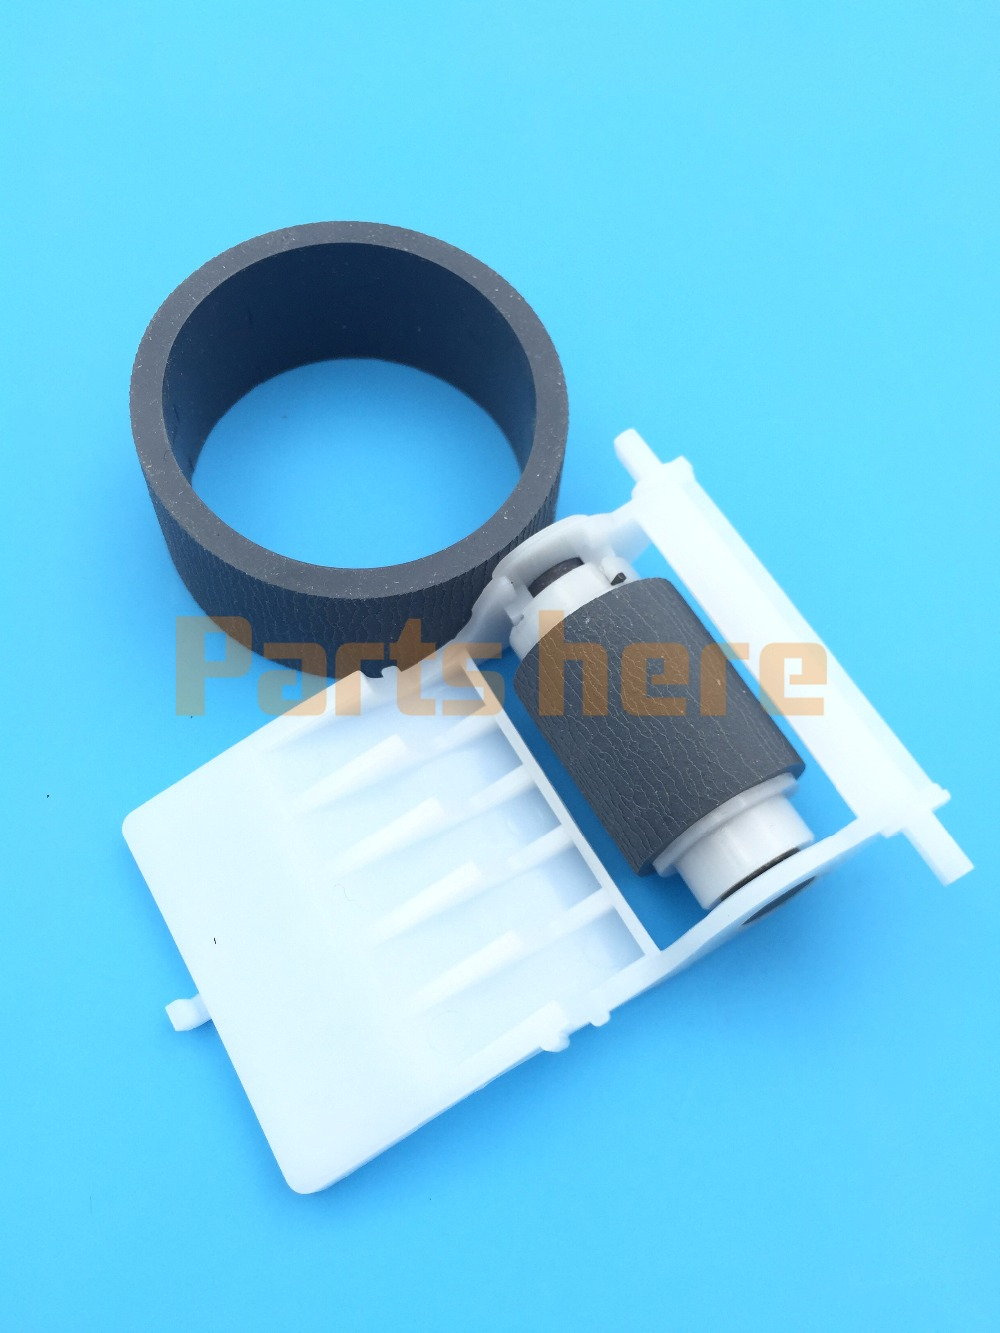 ORIGINAL NEW 1529149 RETARD SUB ASSY Pickup Roller For Epson T1100 B1100 L1300 1410 1390 1900 L1800 1400 1430 ME1100 R1800 2000